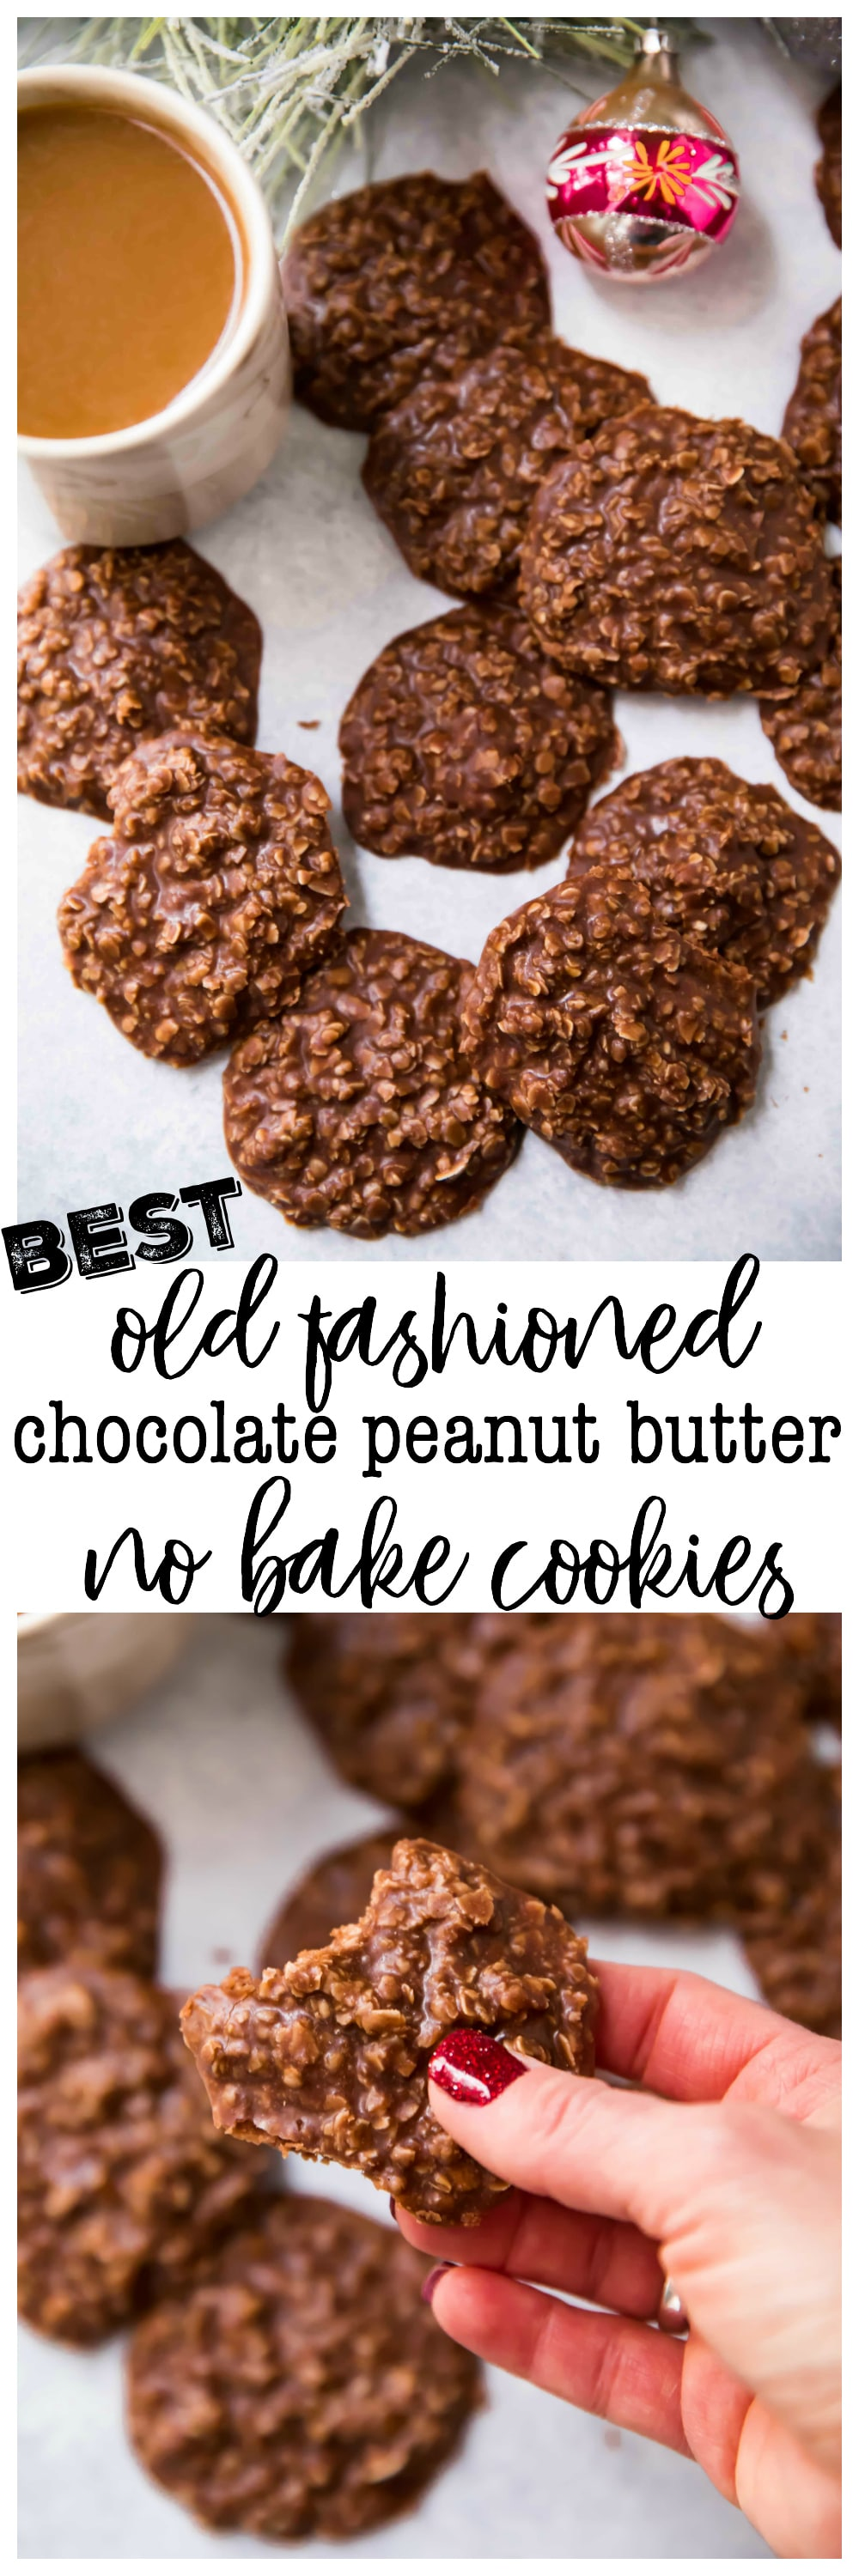 The Best Old Fashioned Chocolate Peanut Butter No Bake Cookies ...